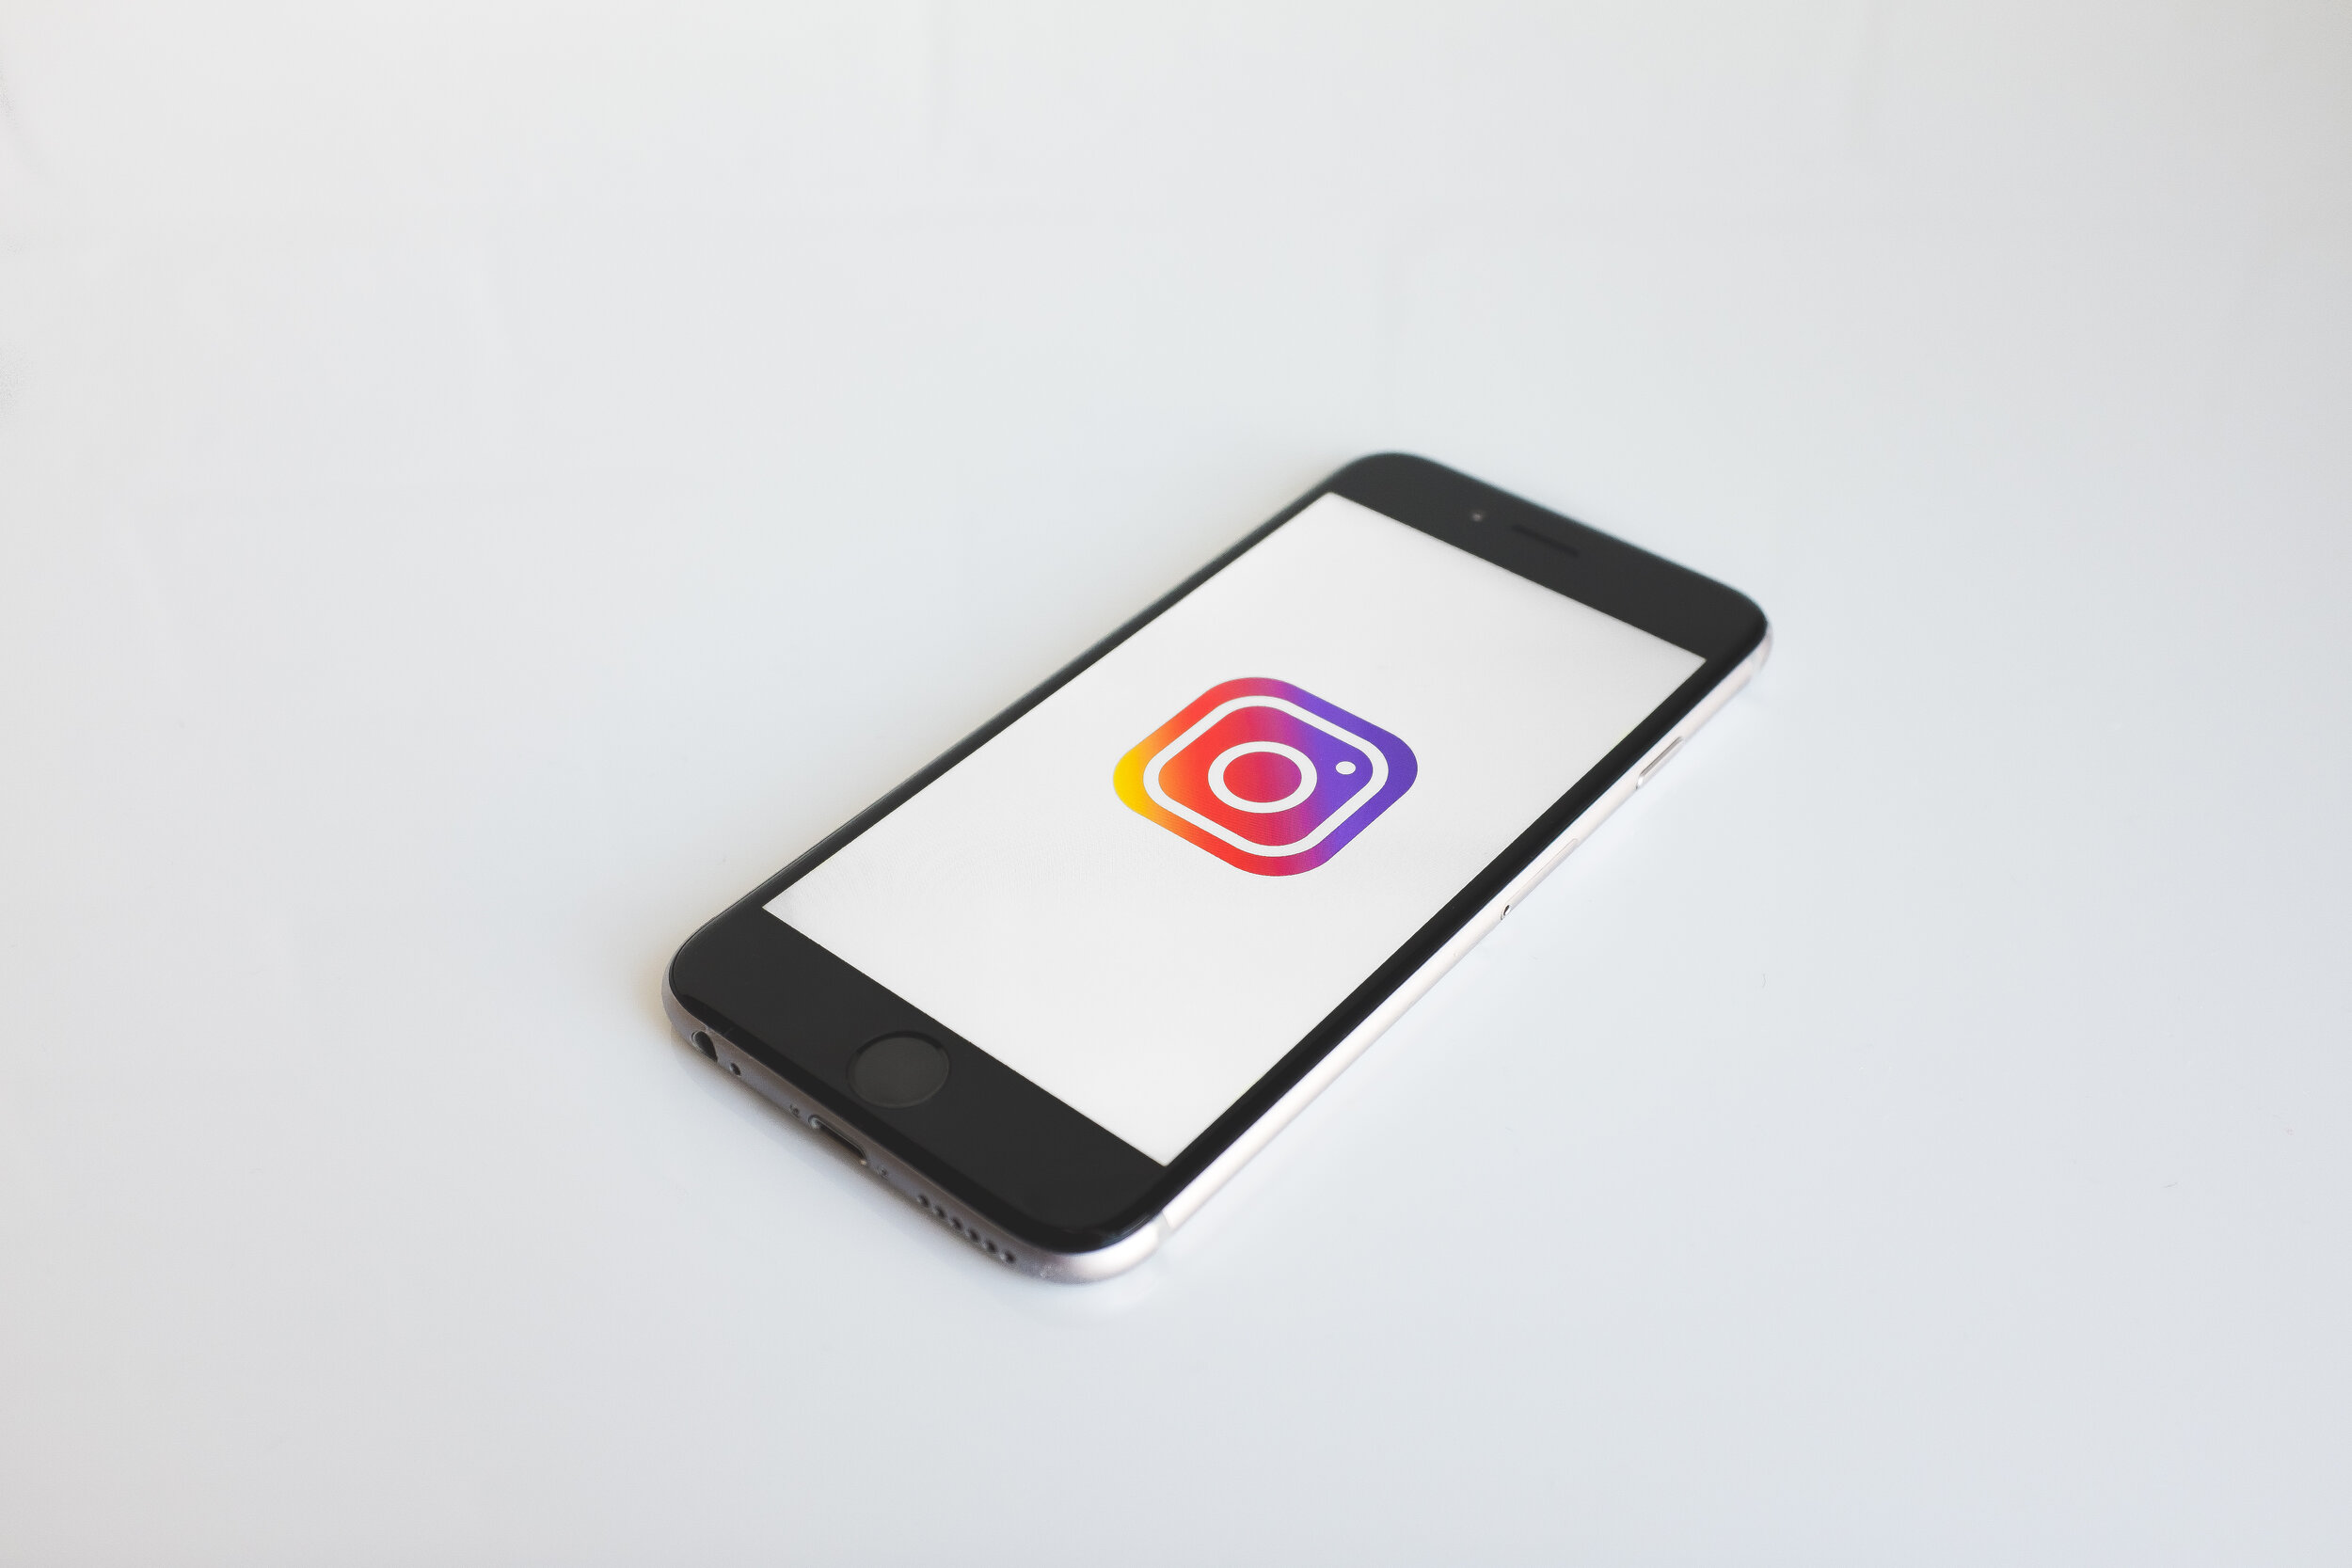 Publishing daily content to social media sites like Instagram should be part of your Day-to-Day content strategy.